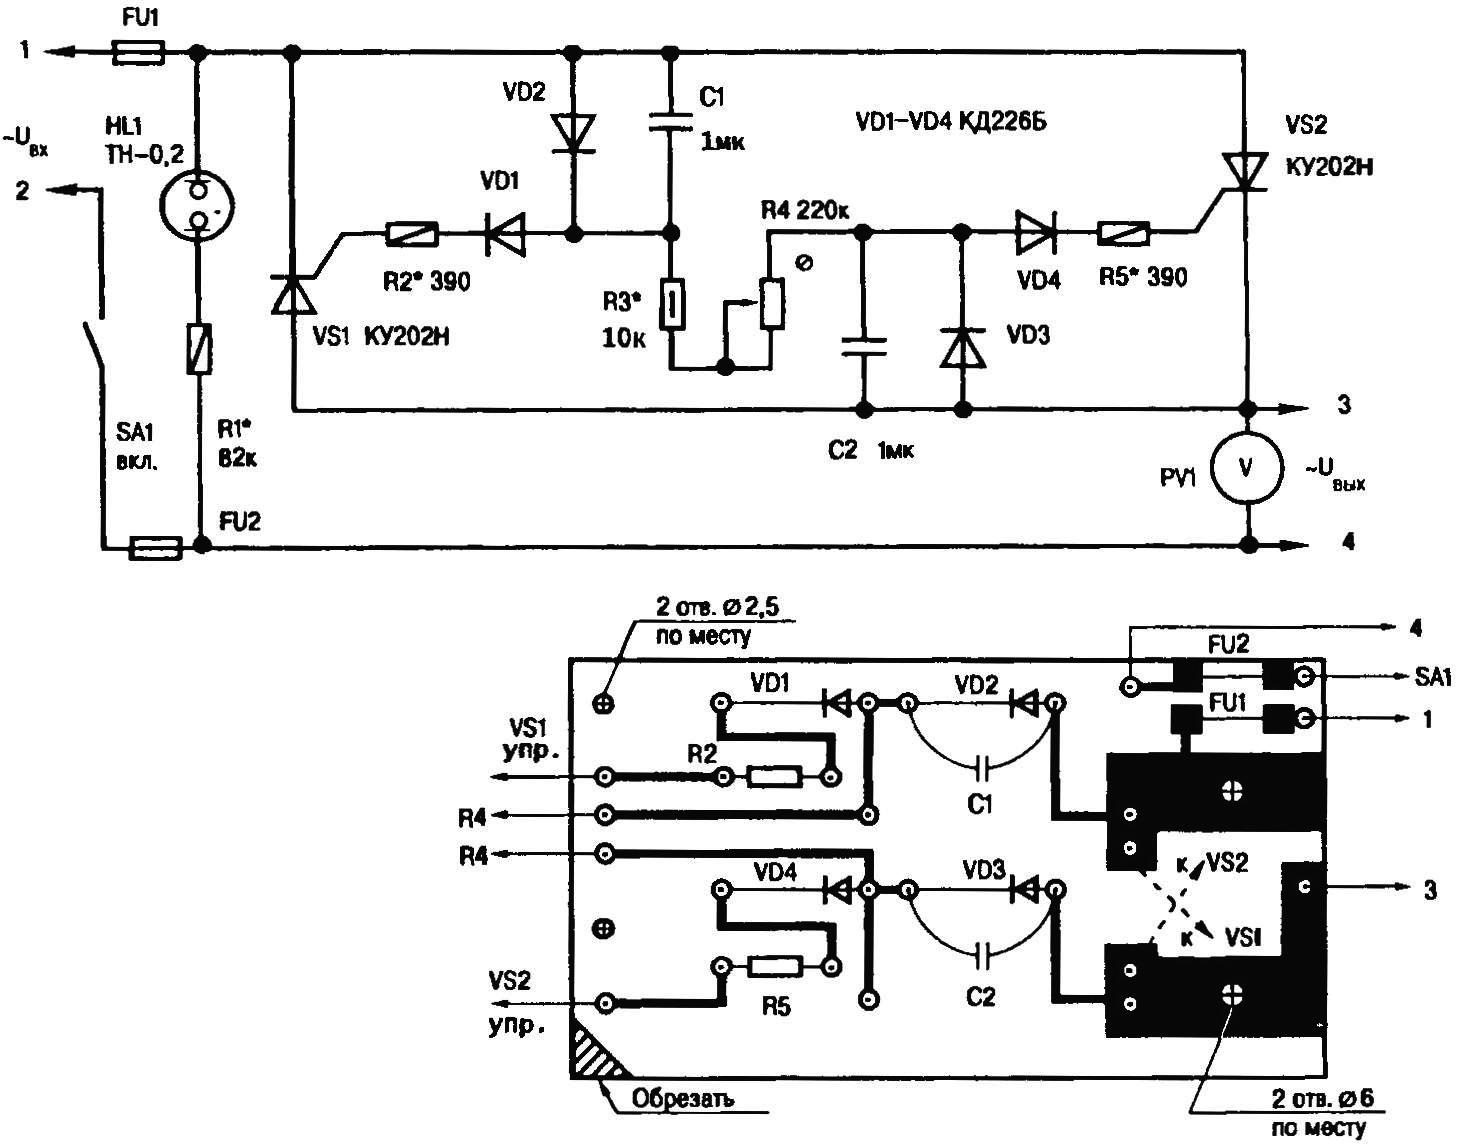 Electrical schematic and a printed circuit Board, thyristor voltage regulator